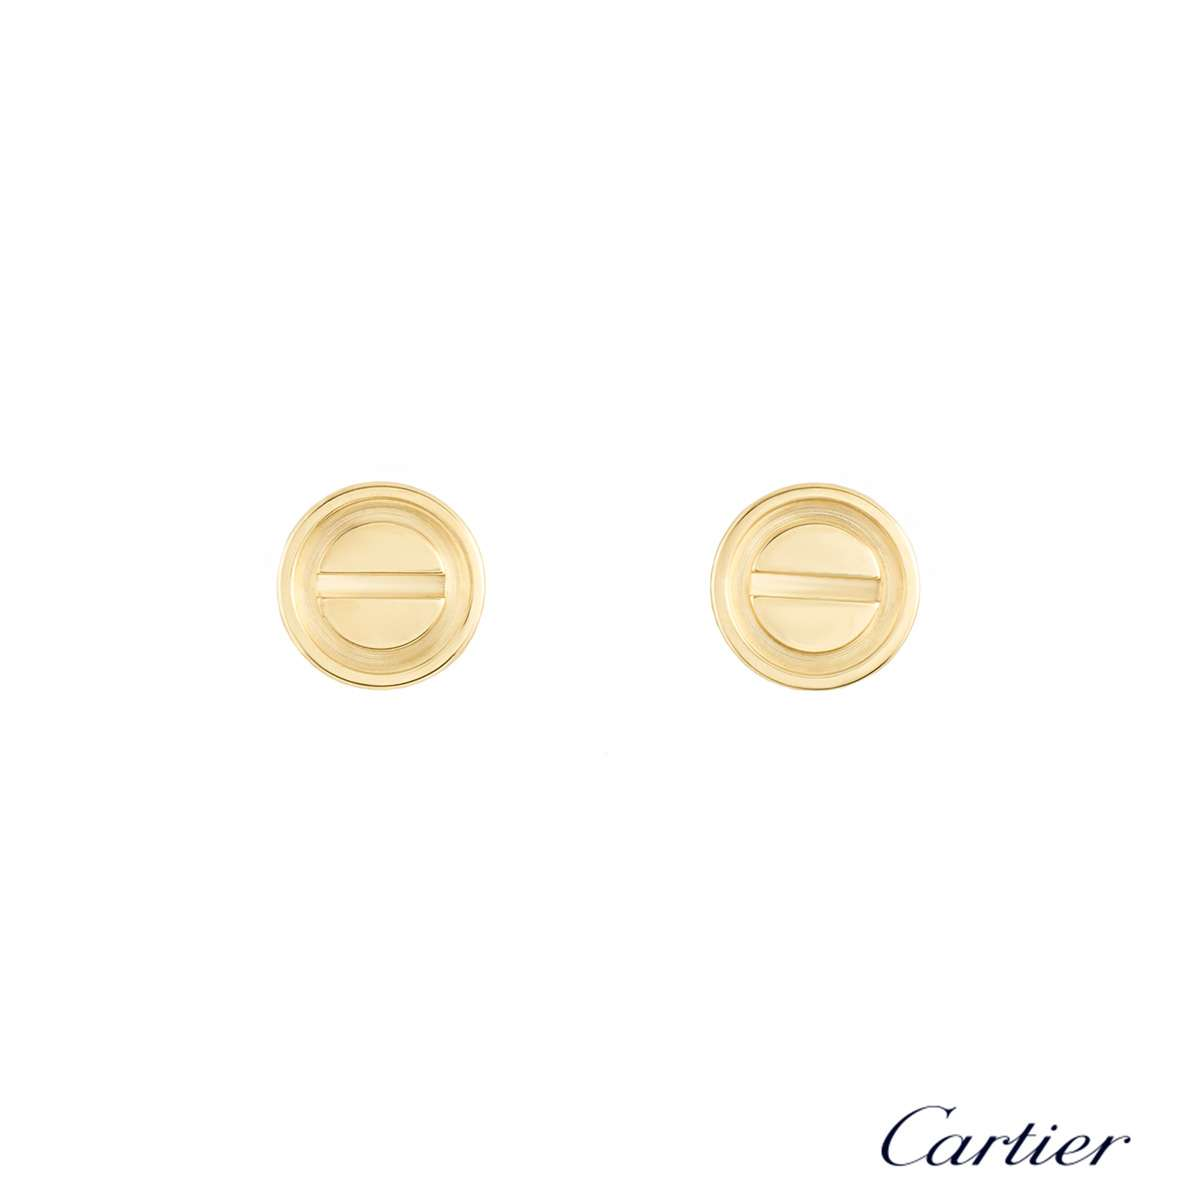 Cartier Stud Earrings Cartier Style Stud Earring Box